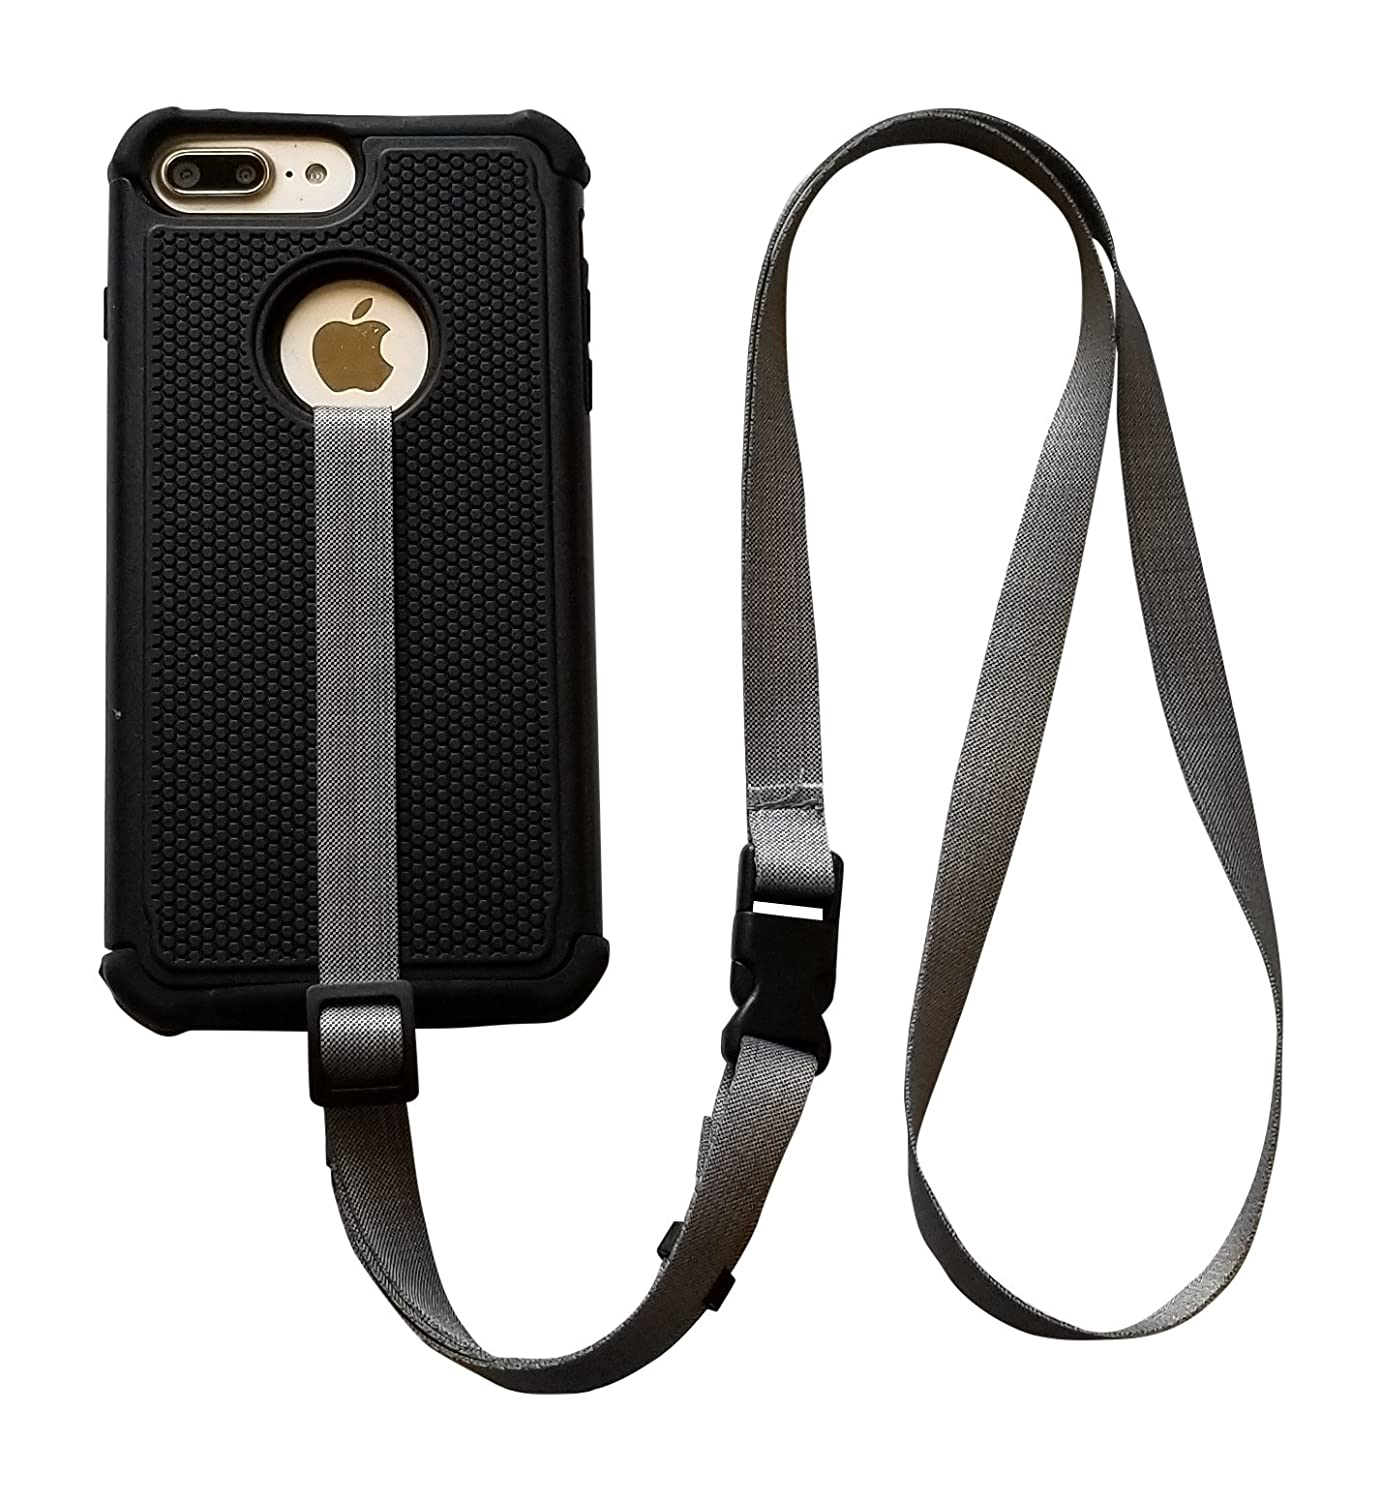 online store dbafe 7a997 foneleash 3 in 1 Universal Cell Phone Lanyard Neck Wrist and Hand Strap  Tether (Shade of Gray)